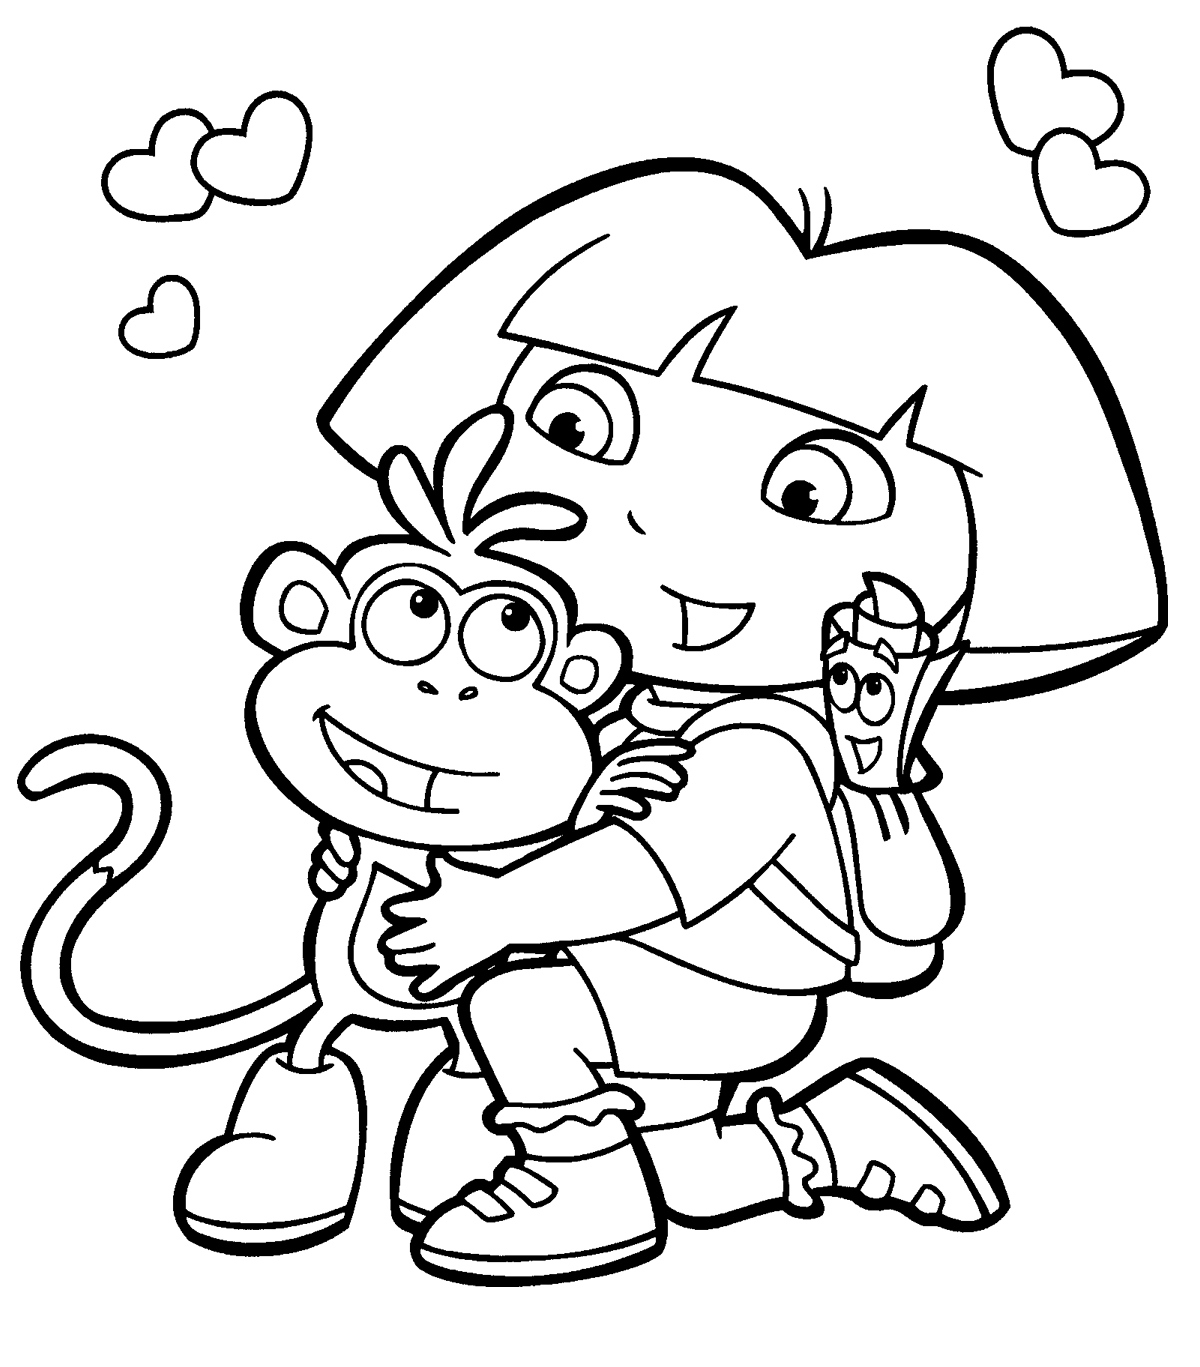 princess dora the explorer coloring pages | Only Coloring ...